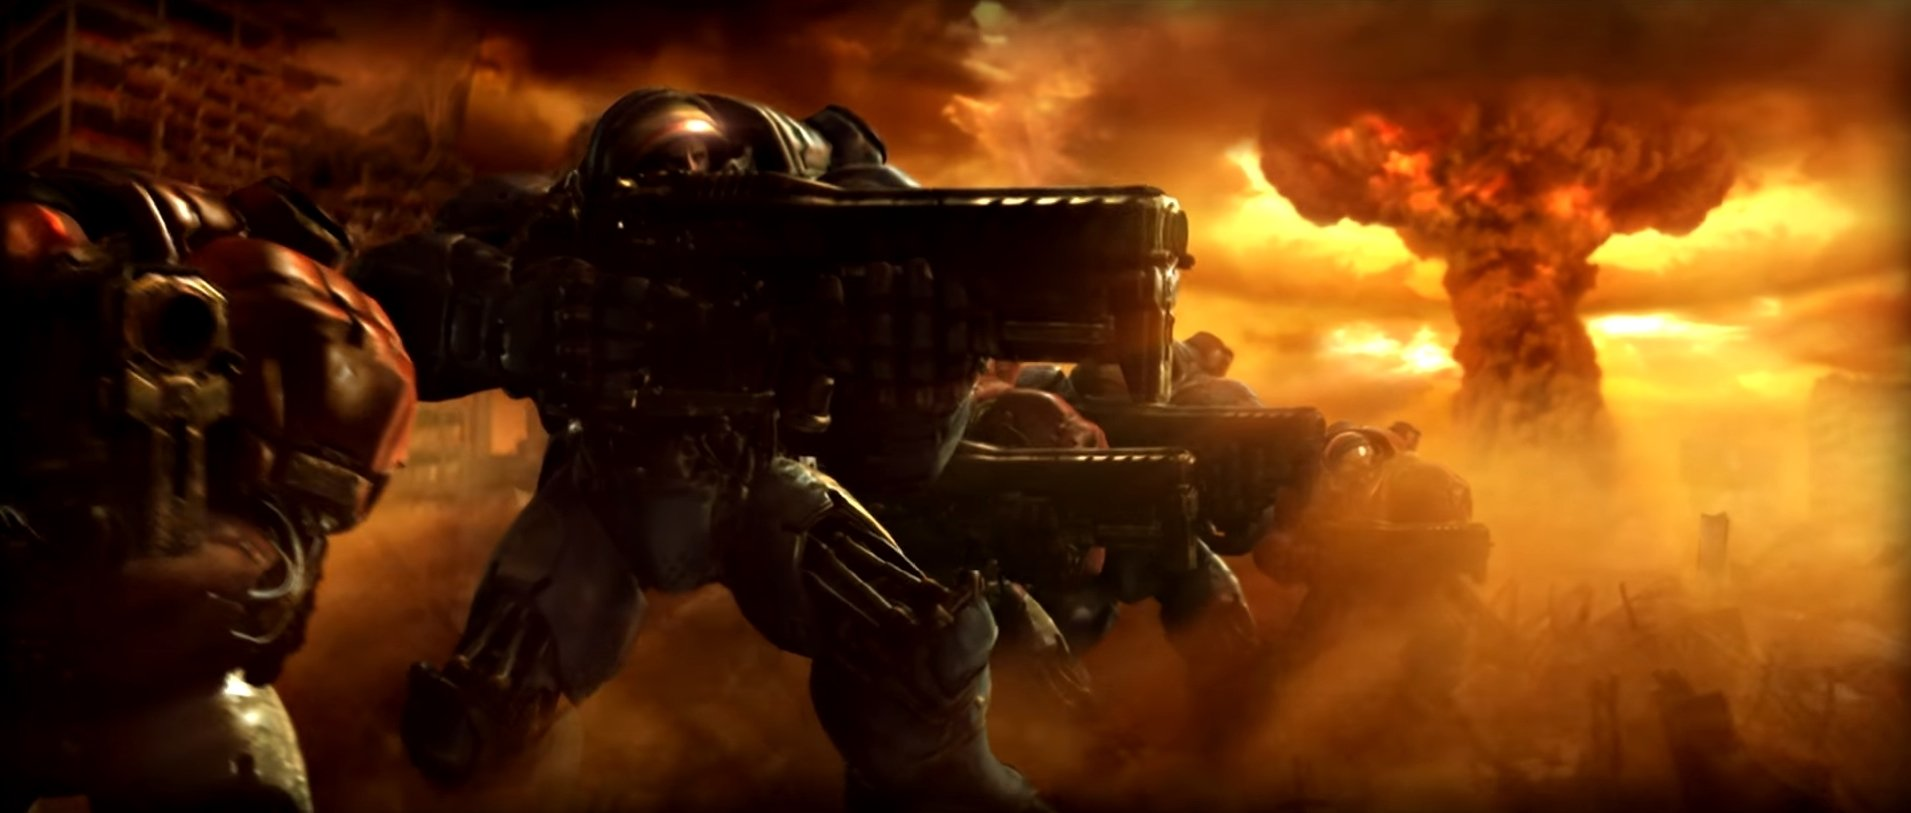 Blizzard Announces End Of Major Updates For StarCraft 2, Confirming The End Of New Major Content For The RTS